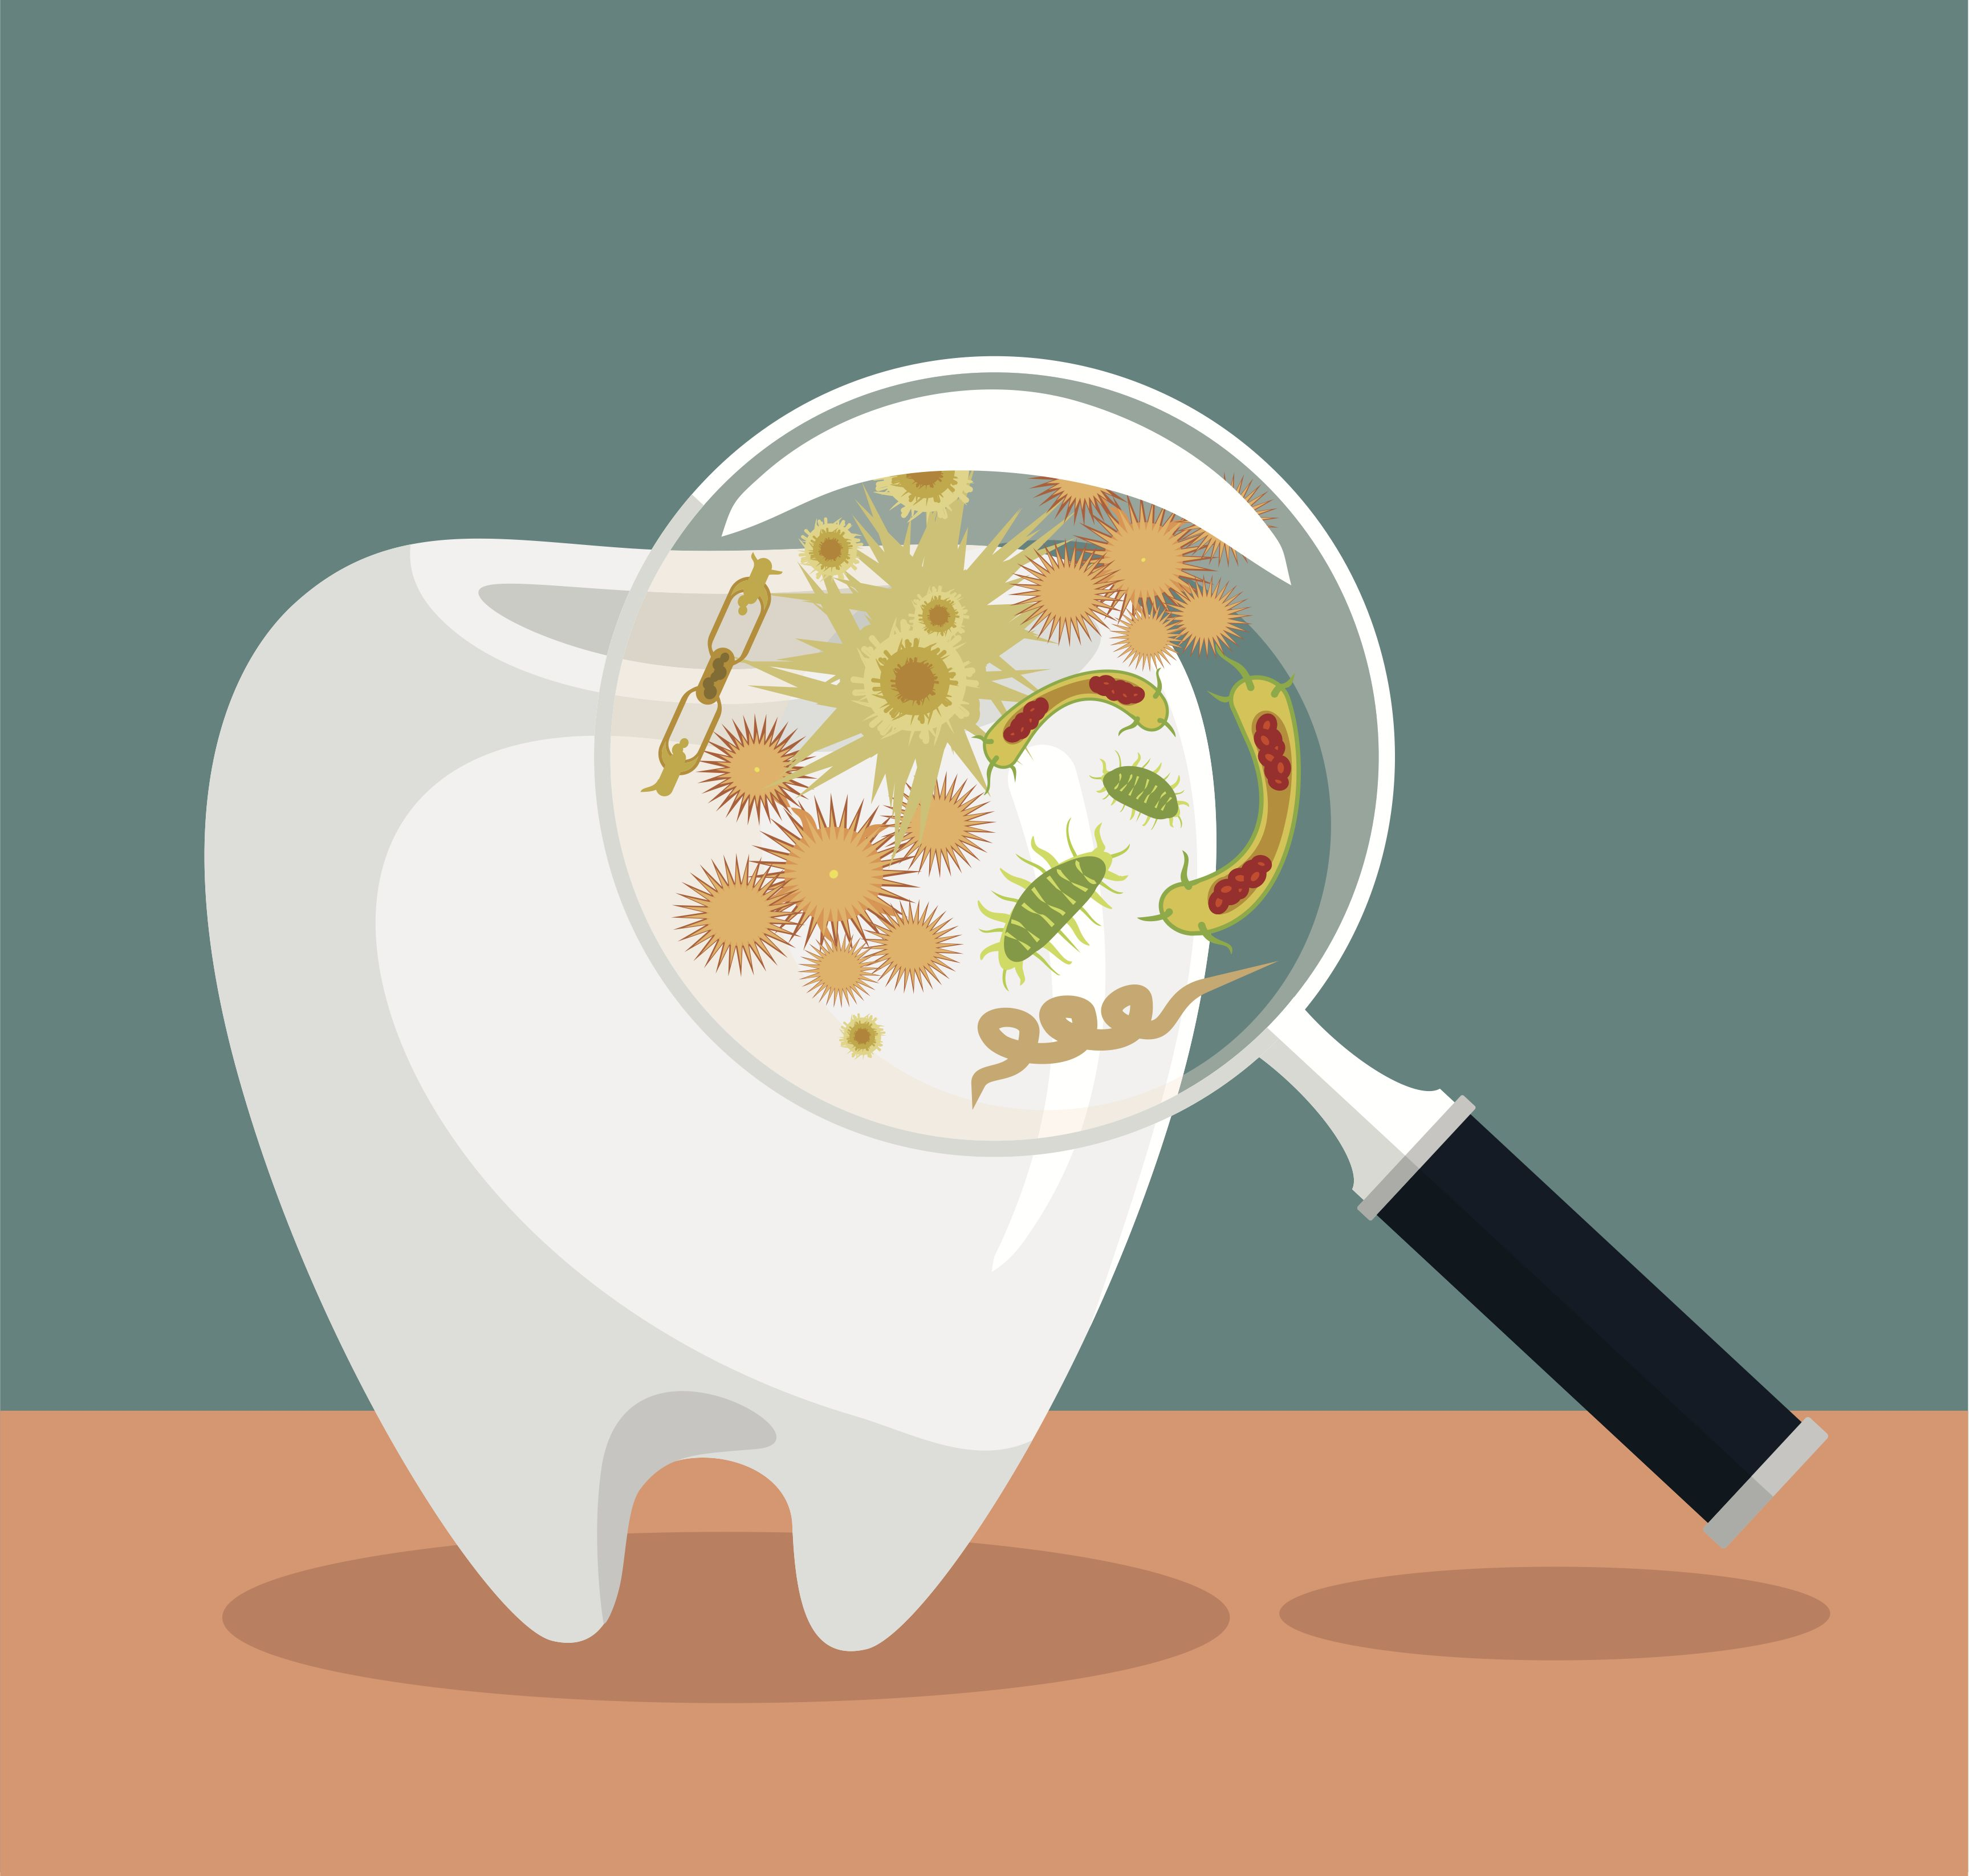 Bacteria clipart bad bacteria. In my own mouth